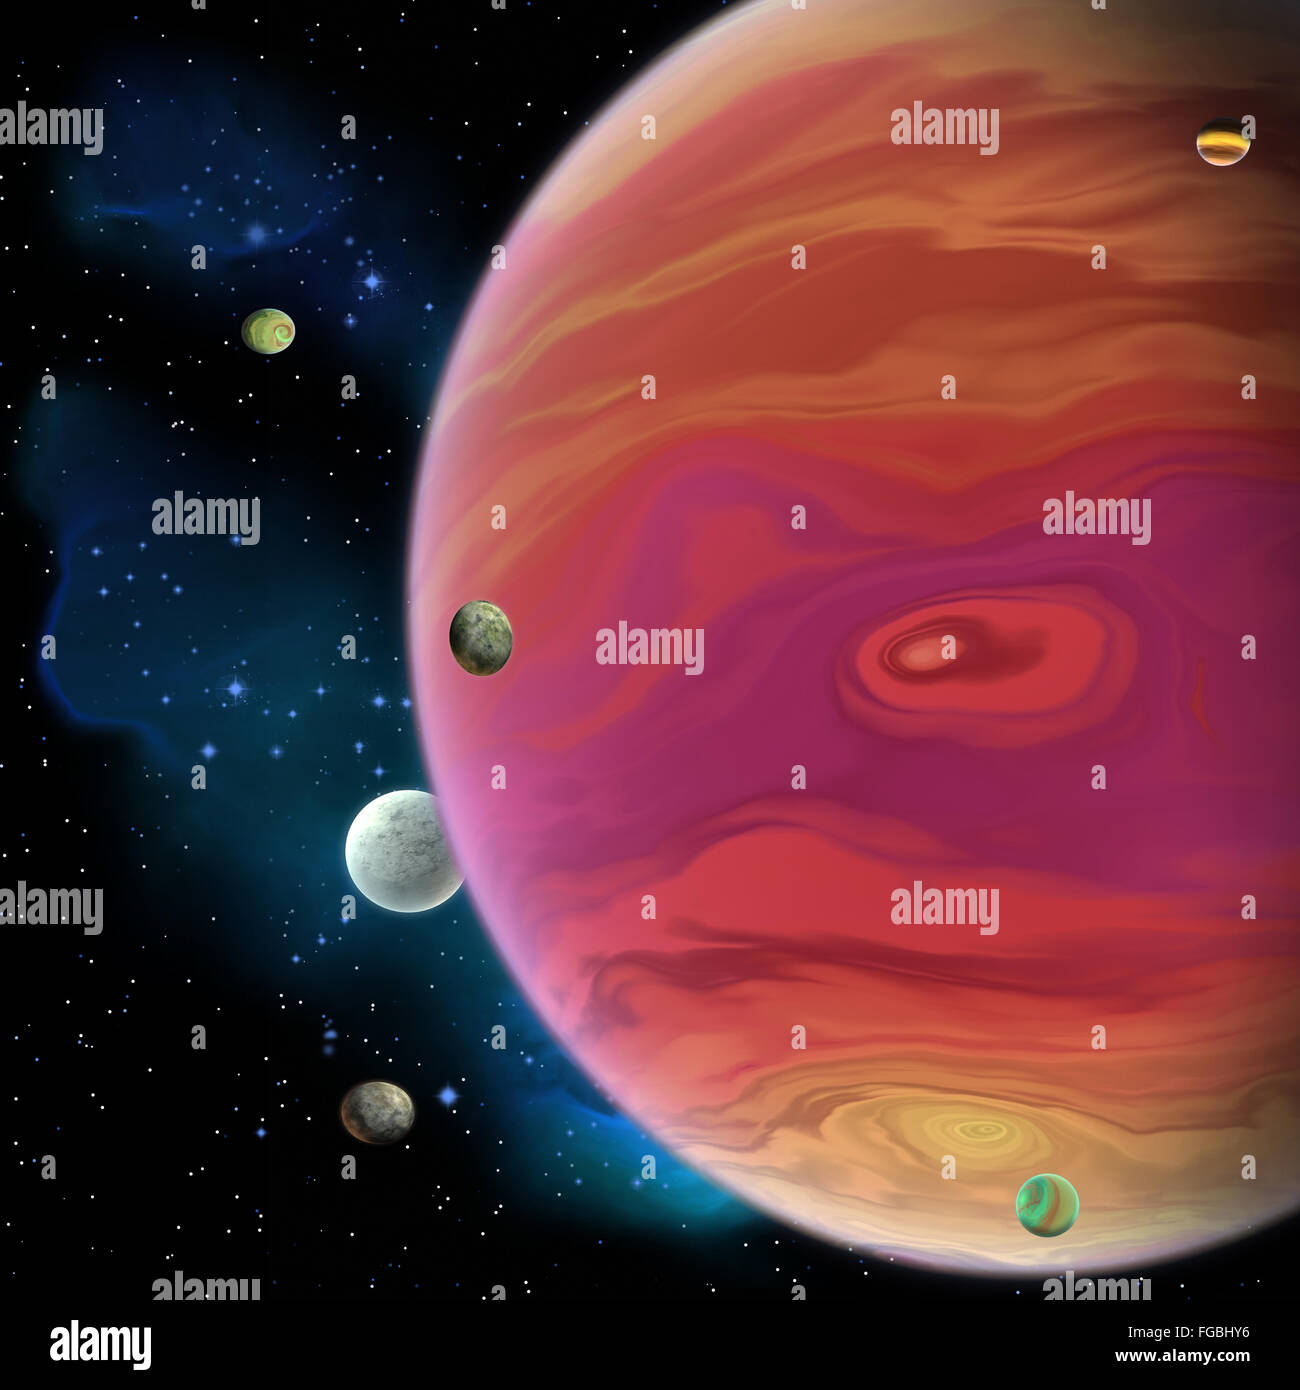 Jupiter is the largest gas giant planet in our solar ...